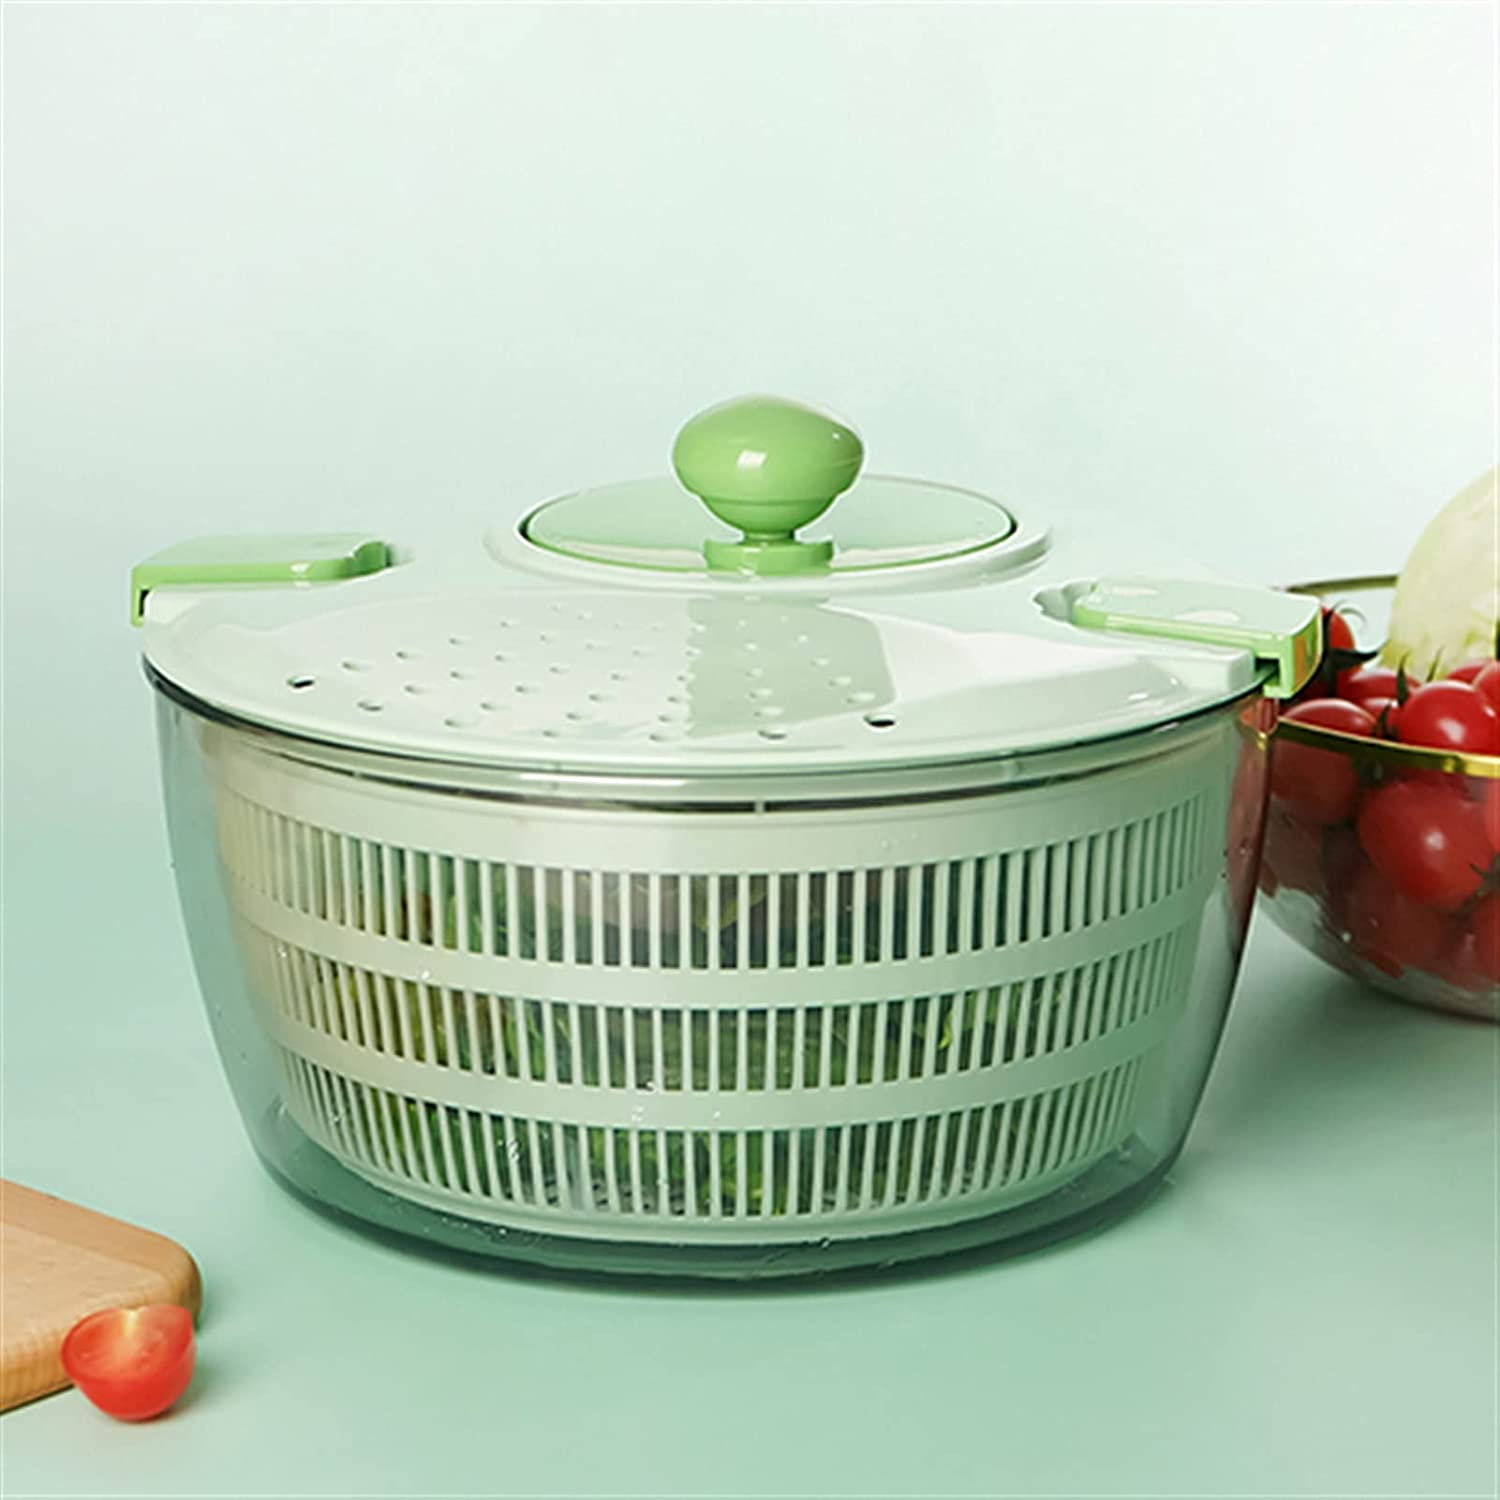 overseas Vegetable And Quality inspection Fruit Drain Multifunct Dehydrator Basket